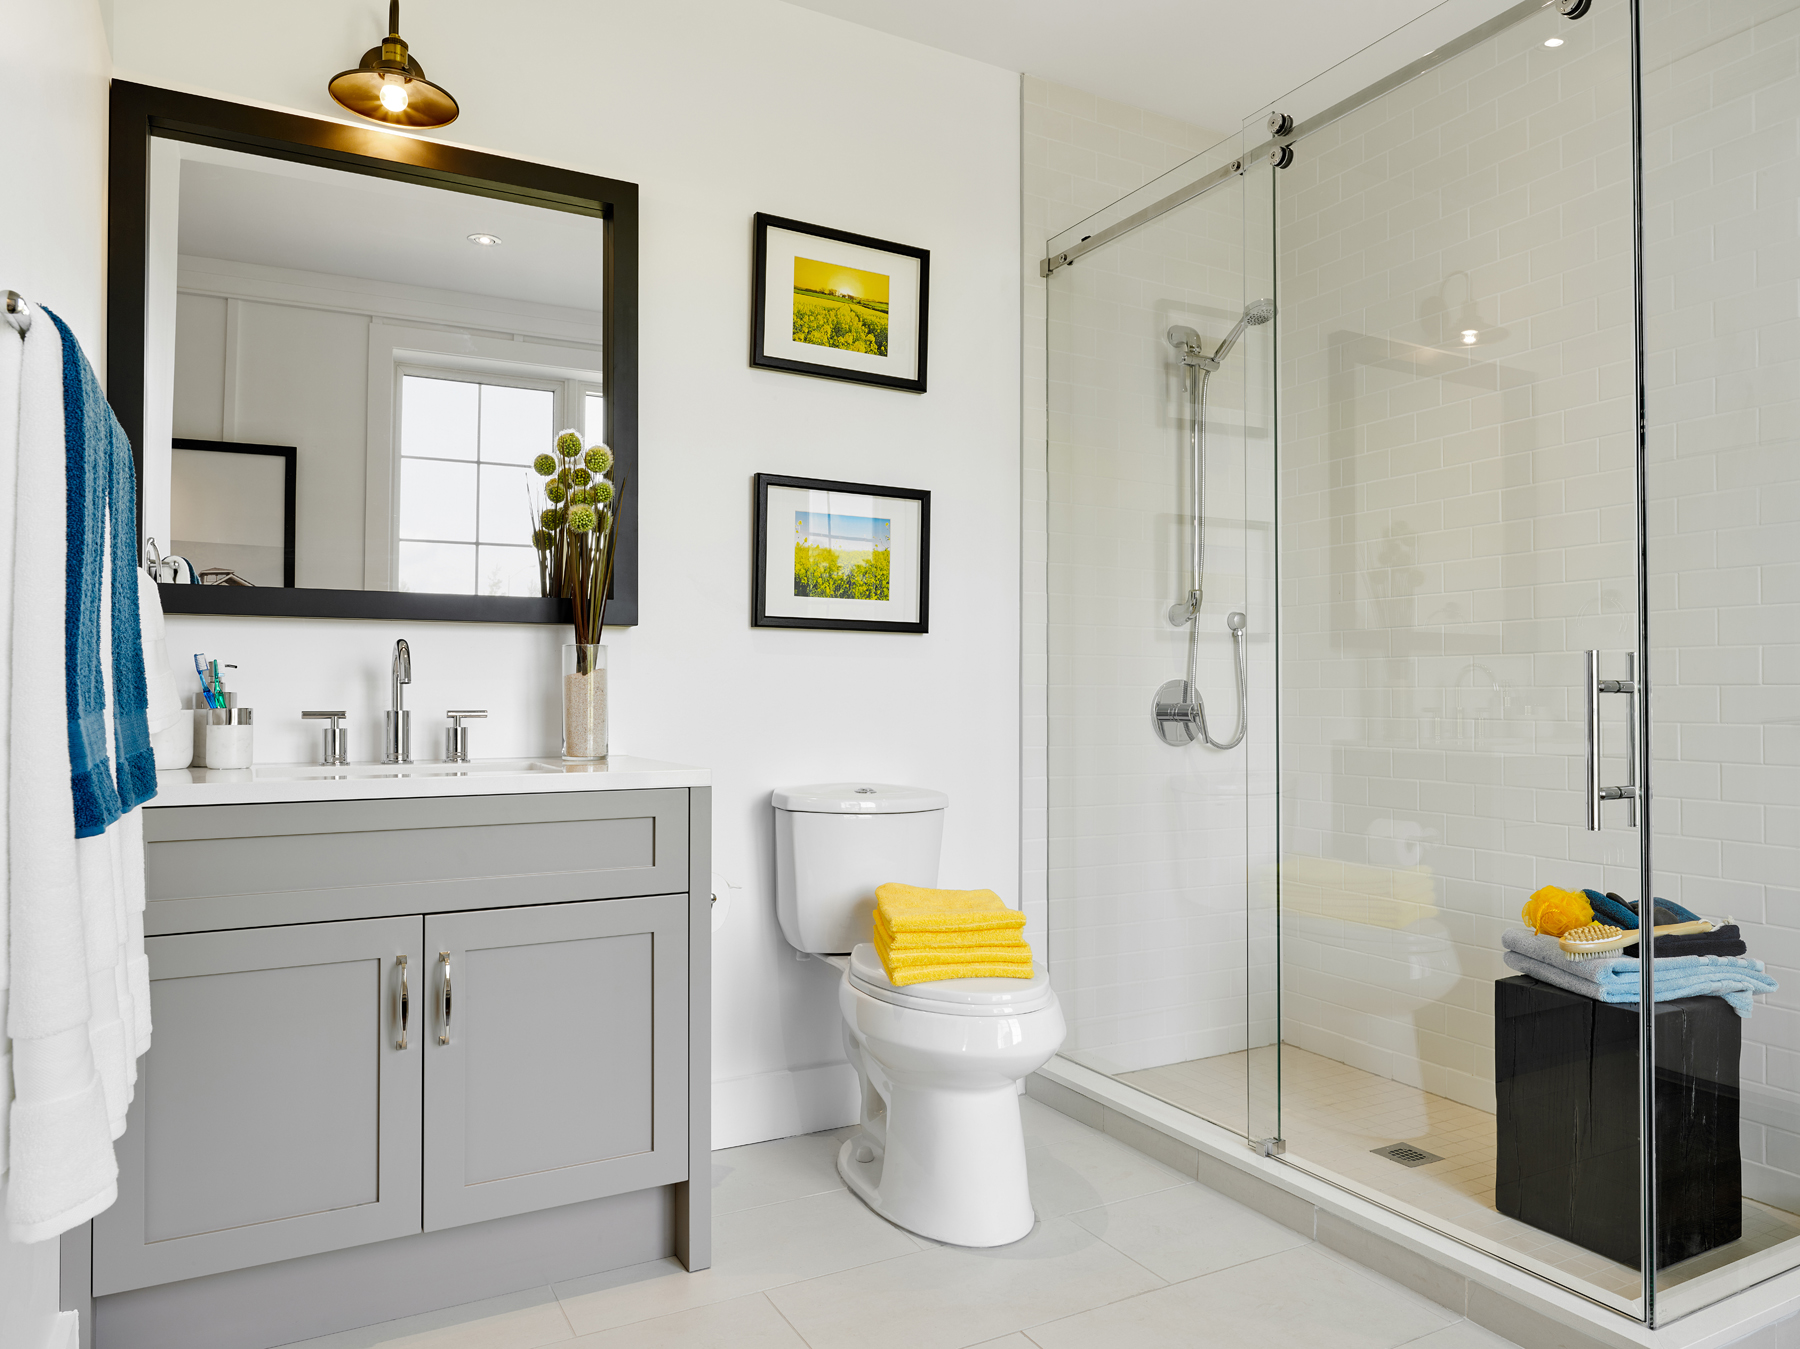 Seasons on Little Lake white bathroom with dove grey vanity, glass shower, and yellow accents